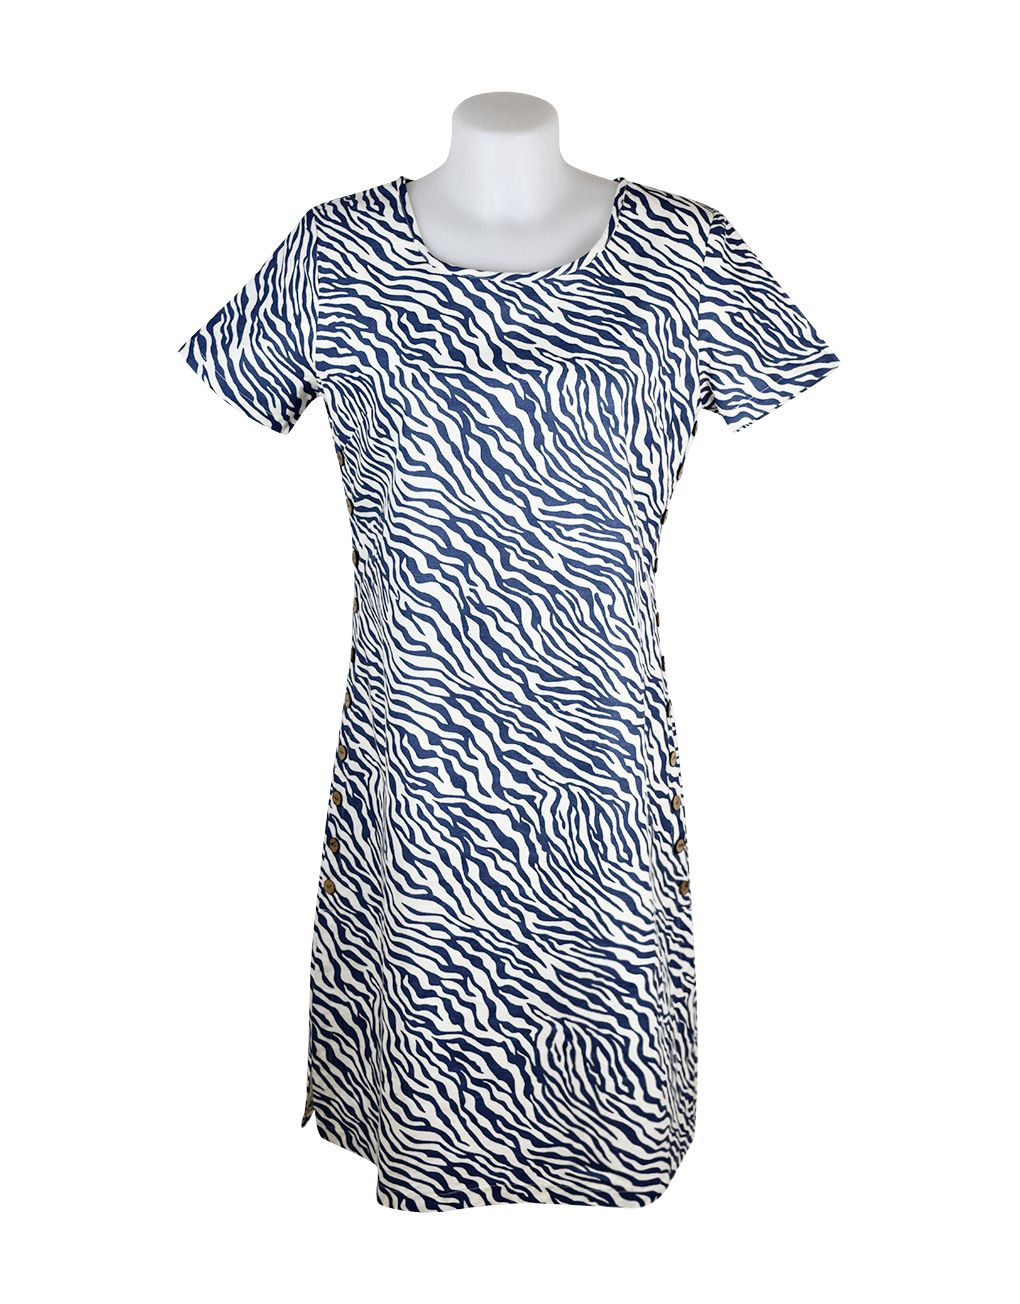 Alice Collins Kylie Dress Indigo Zebra 20 XXXL